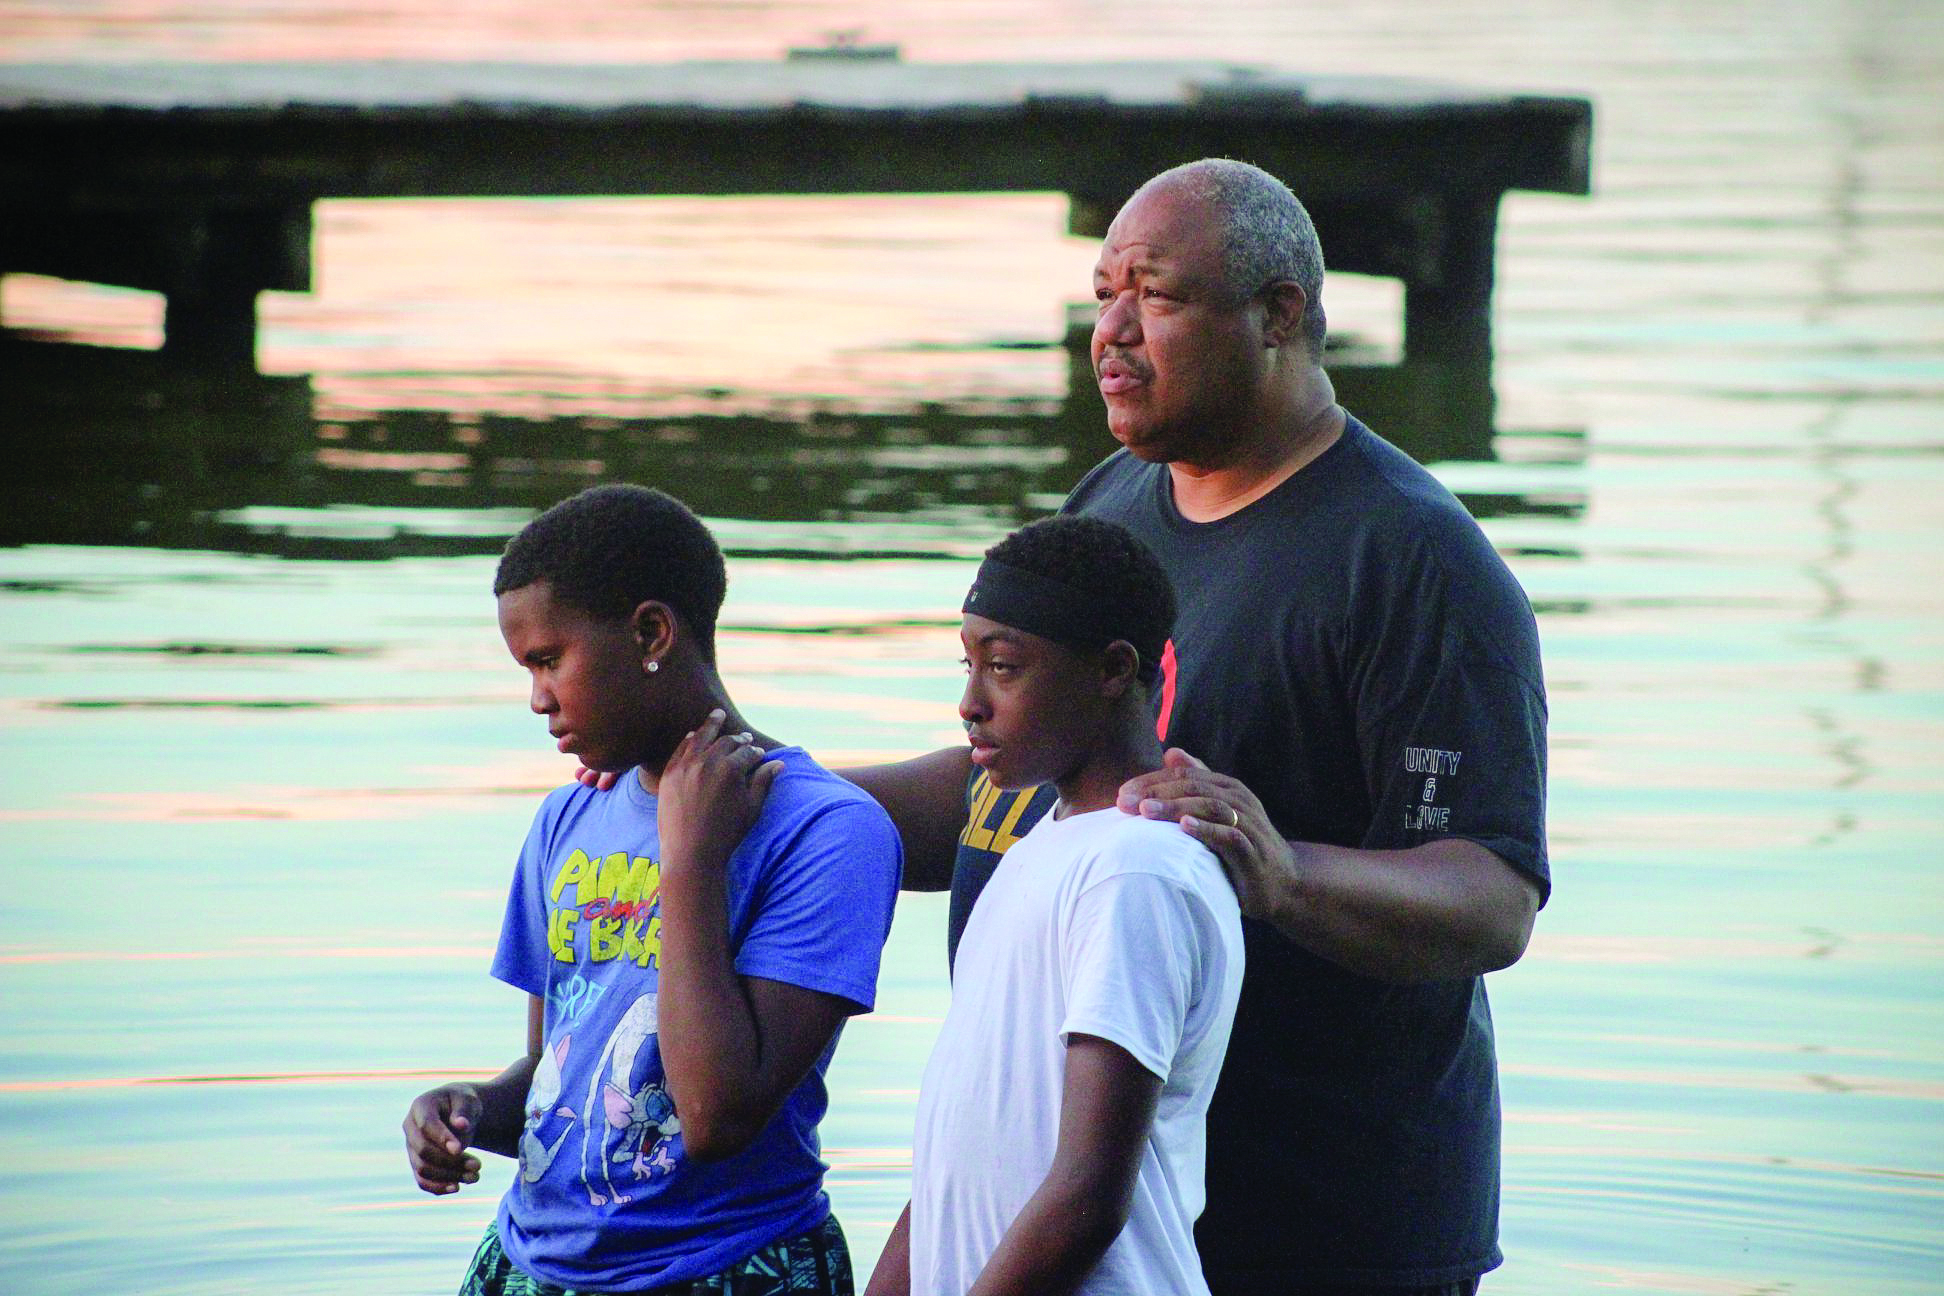 The Rev. Tim Warner, right, and in photo below left, baptizes two young boys at West River during Camp Hope.